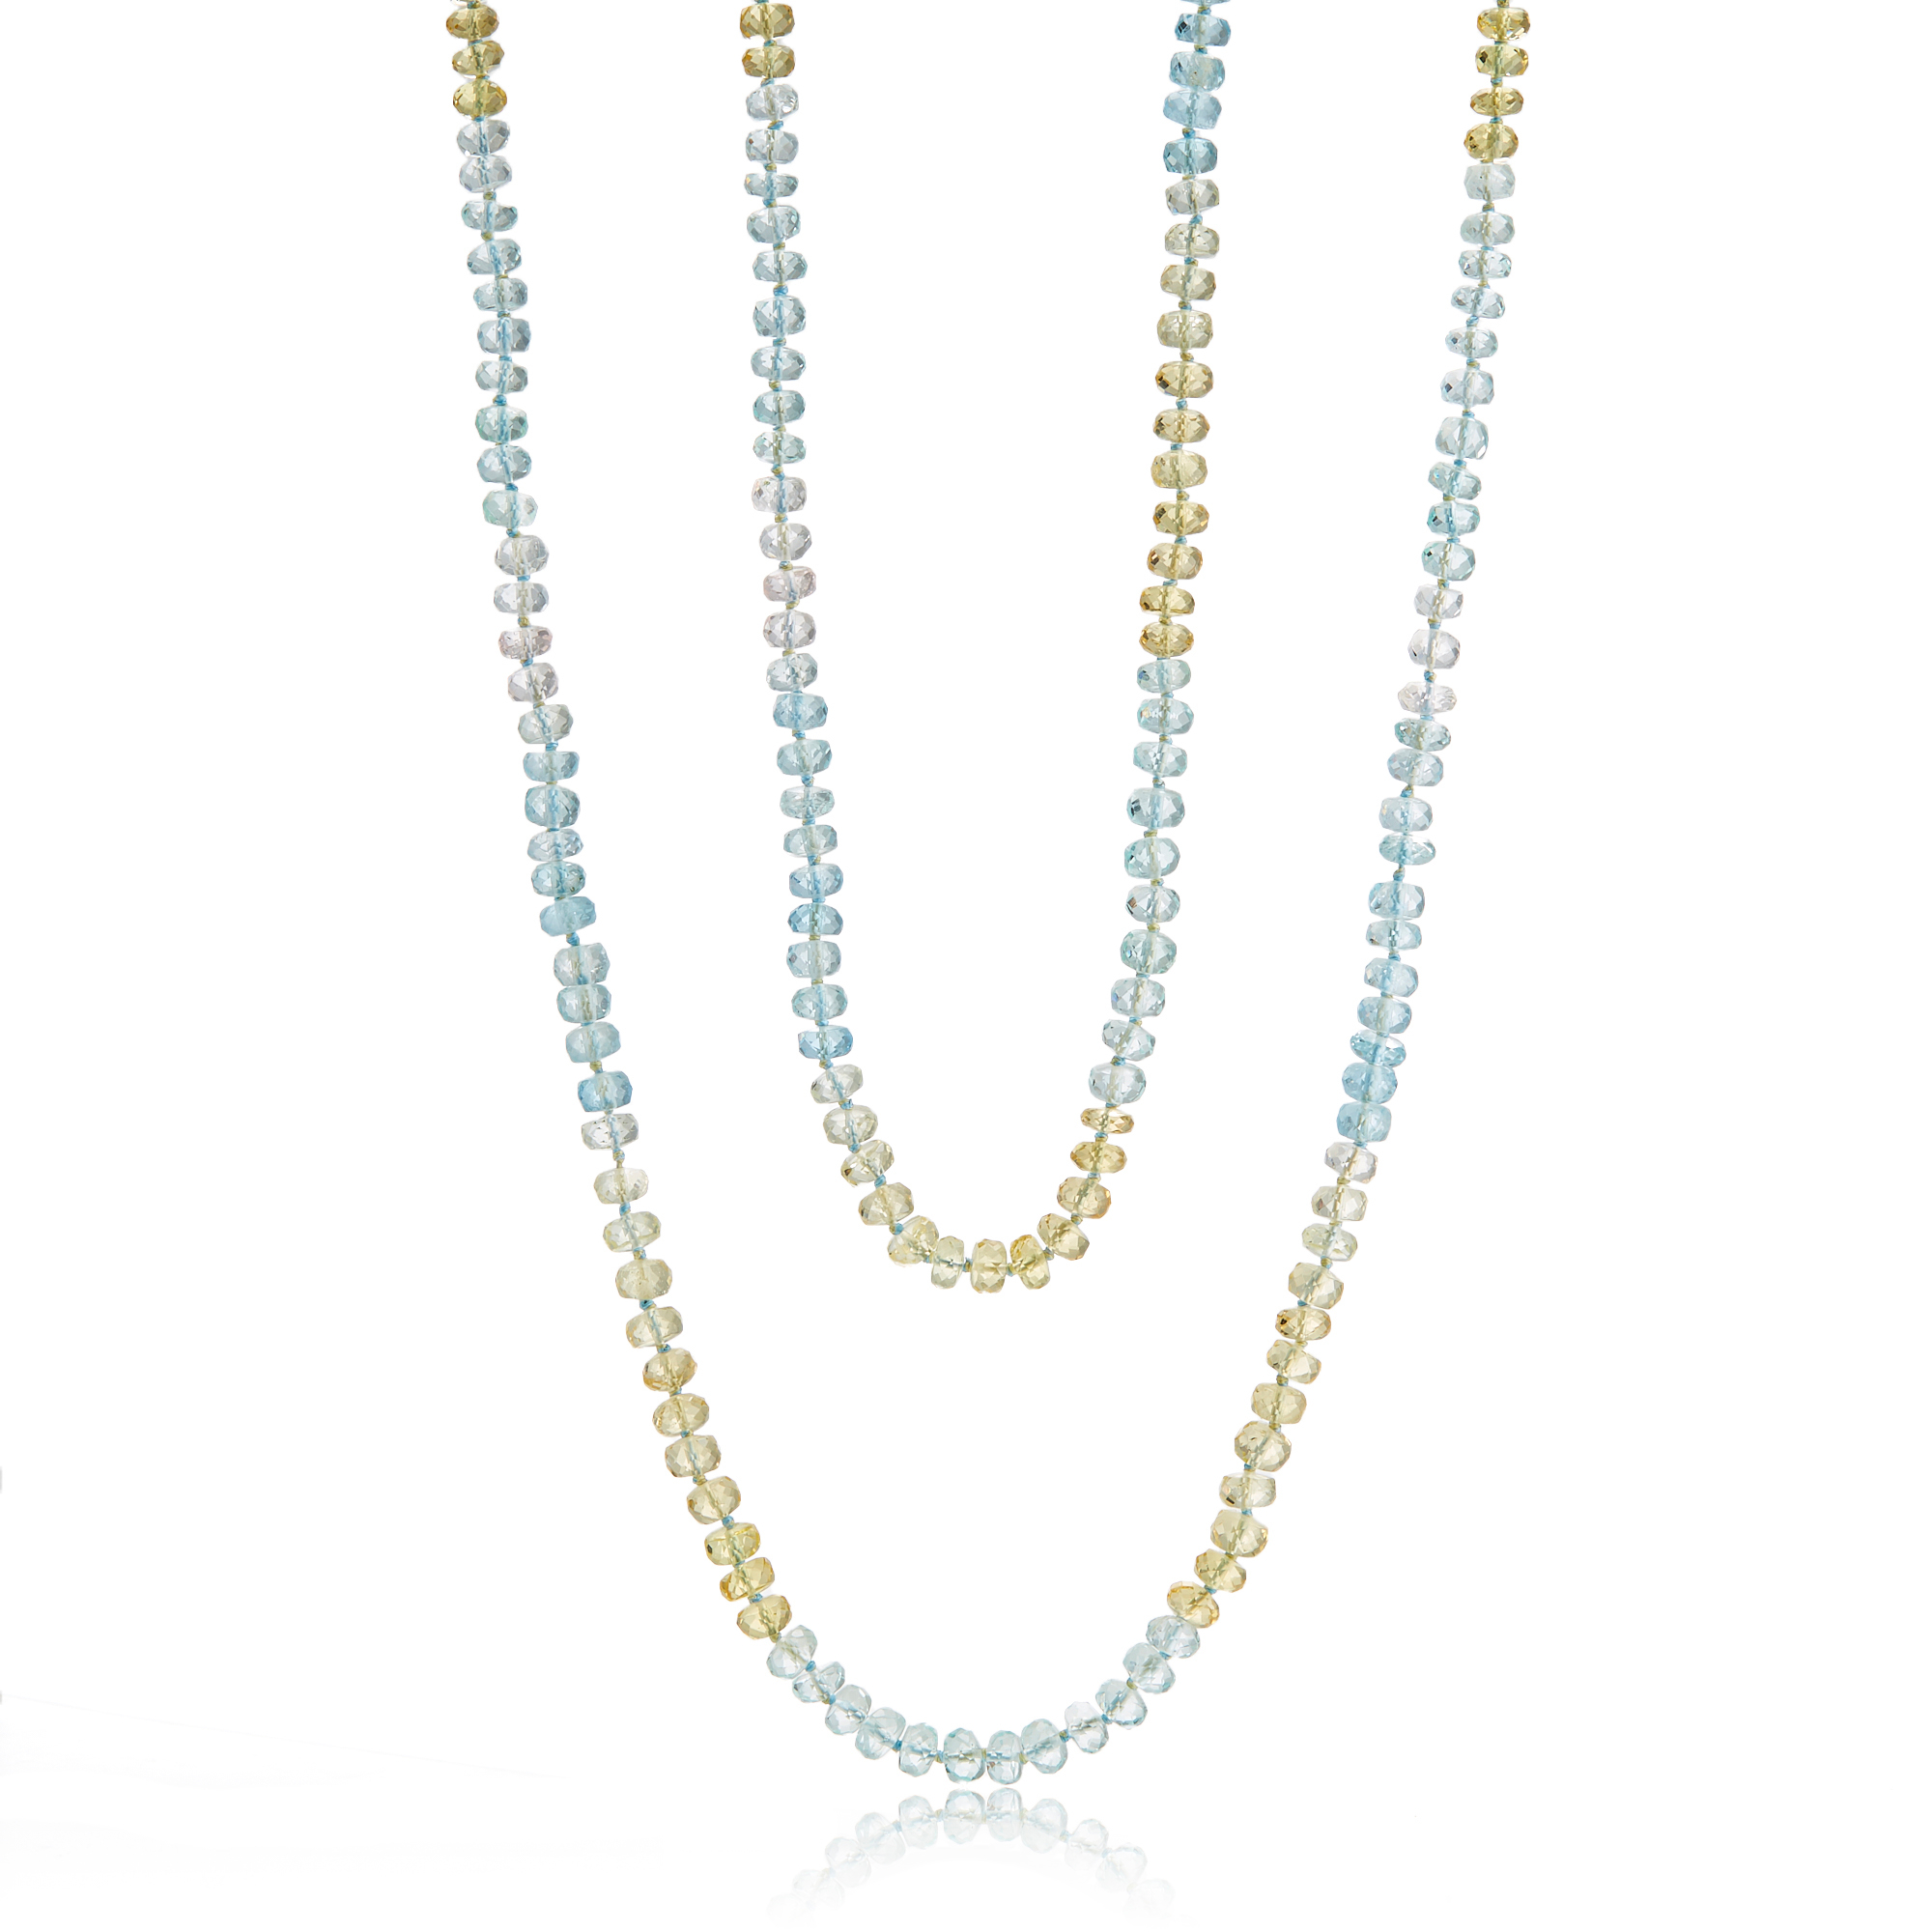 Gump's Faceted Aquamarine & Beryl Rope